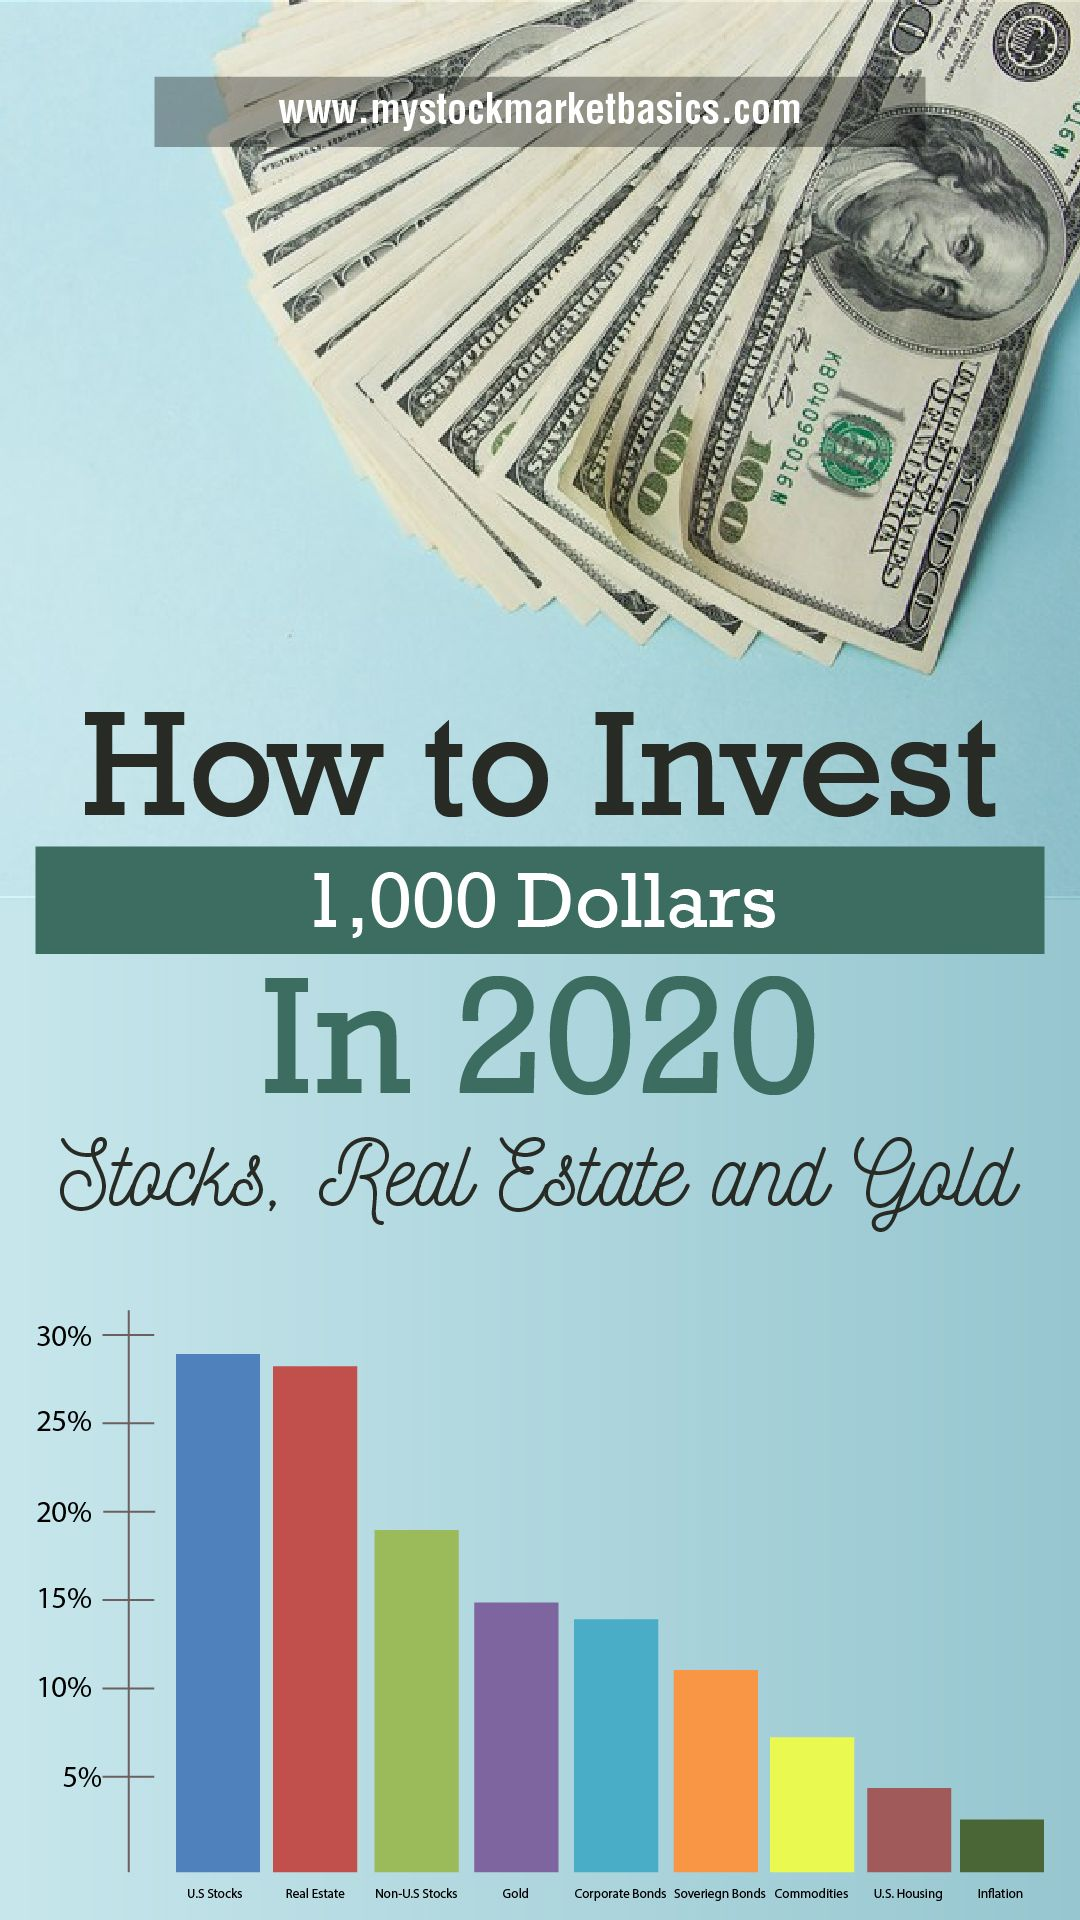 How to Invest 1000 Dollars in 2020 [Stocks, Real Estate